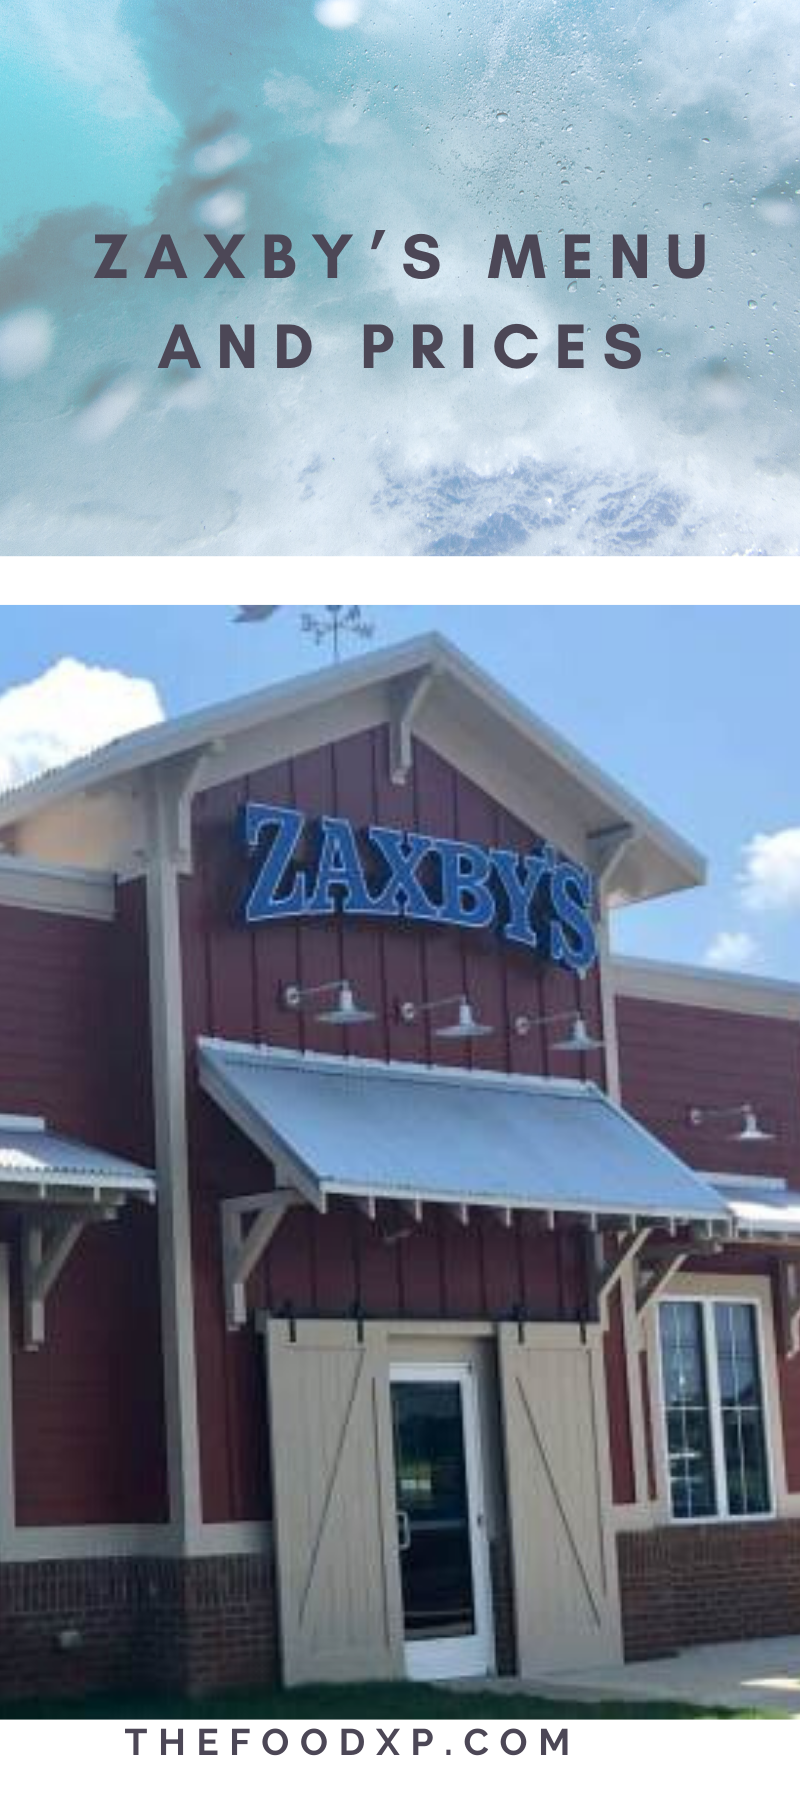 Zaxby's Menu with Prices 2020 Updated in 2020 Zaxbys